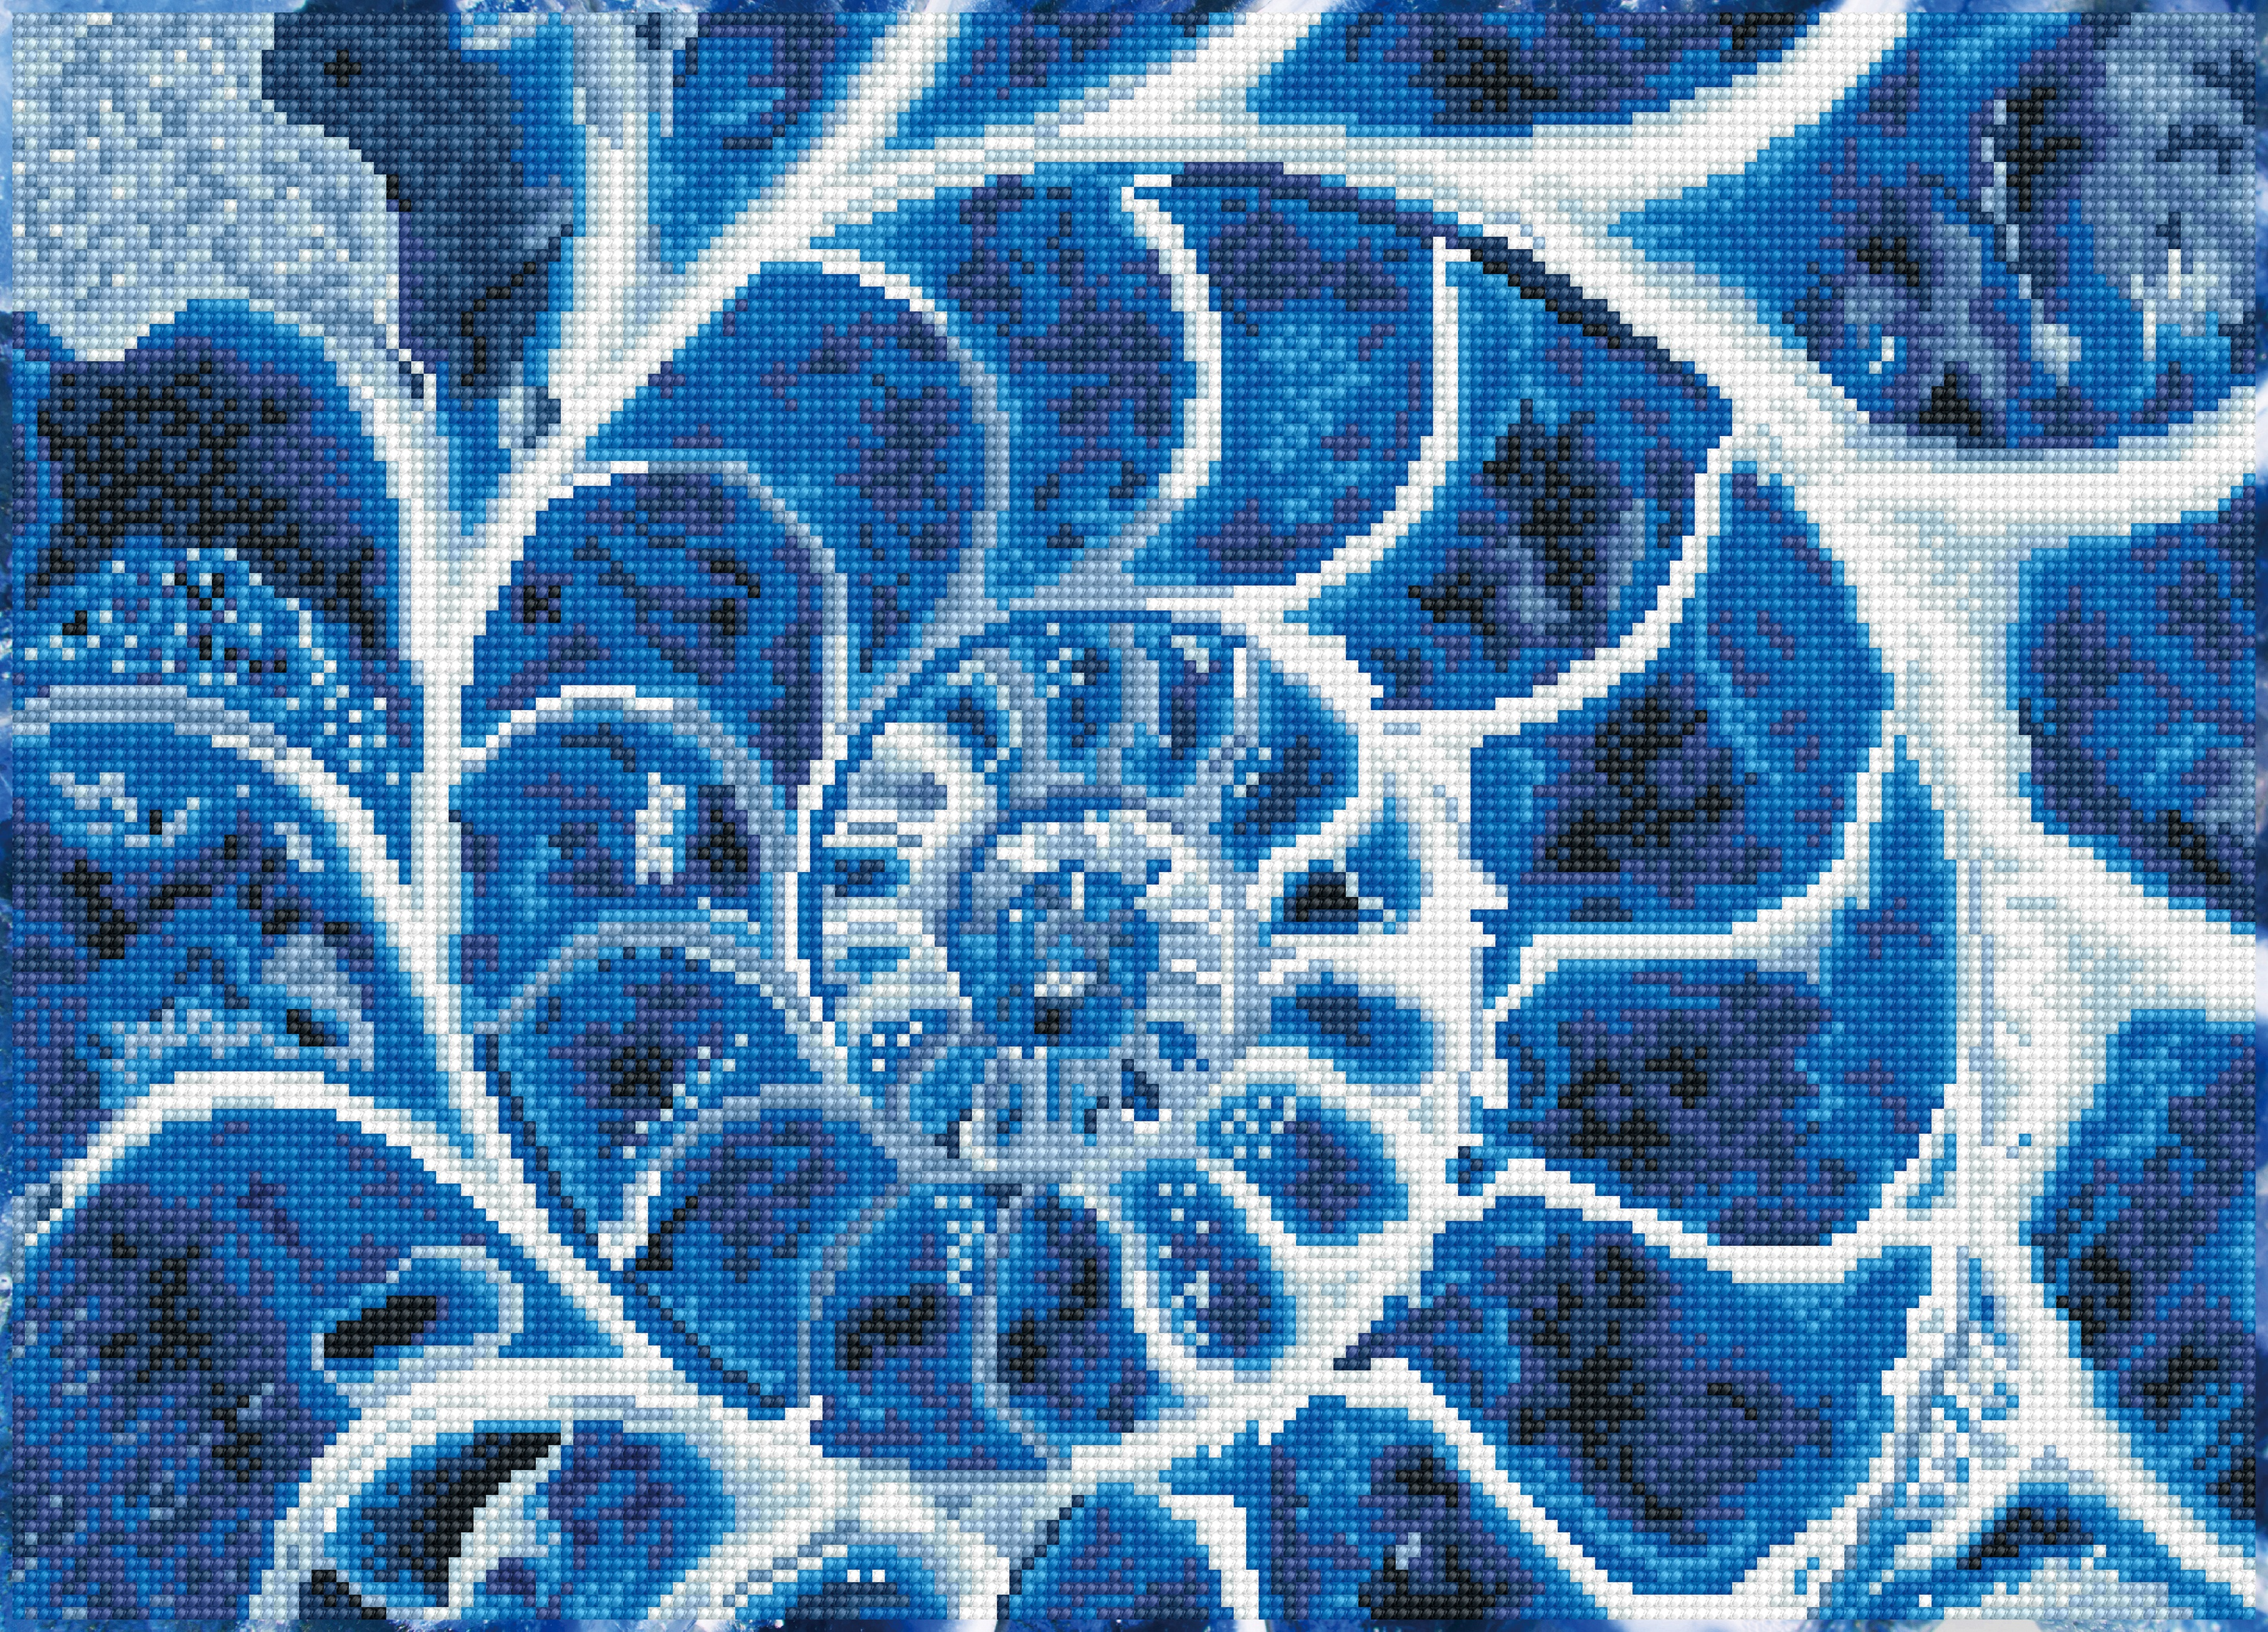 Diamond Dotz Diamond Embroidery Facet Art Kit 20X14-Blue Nautilus